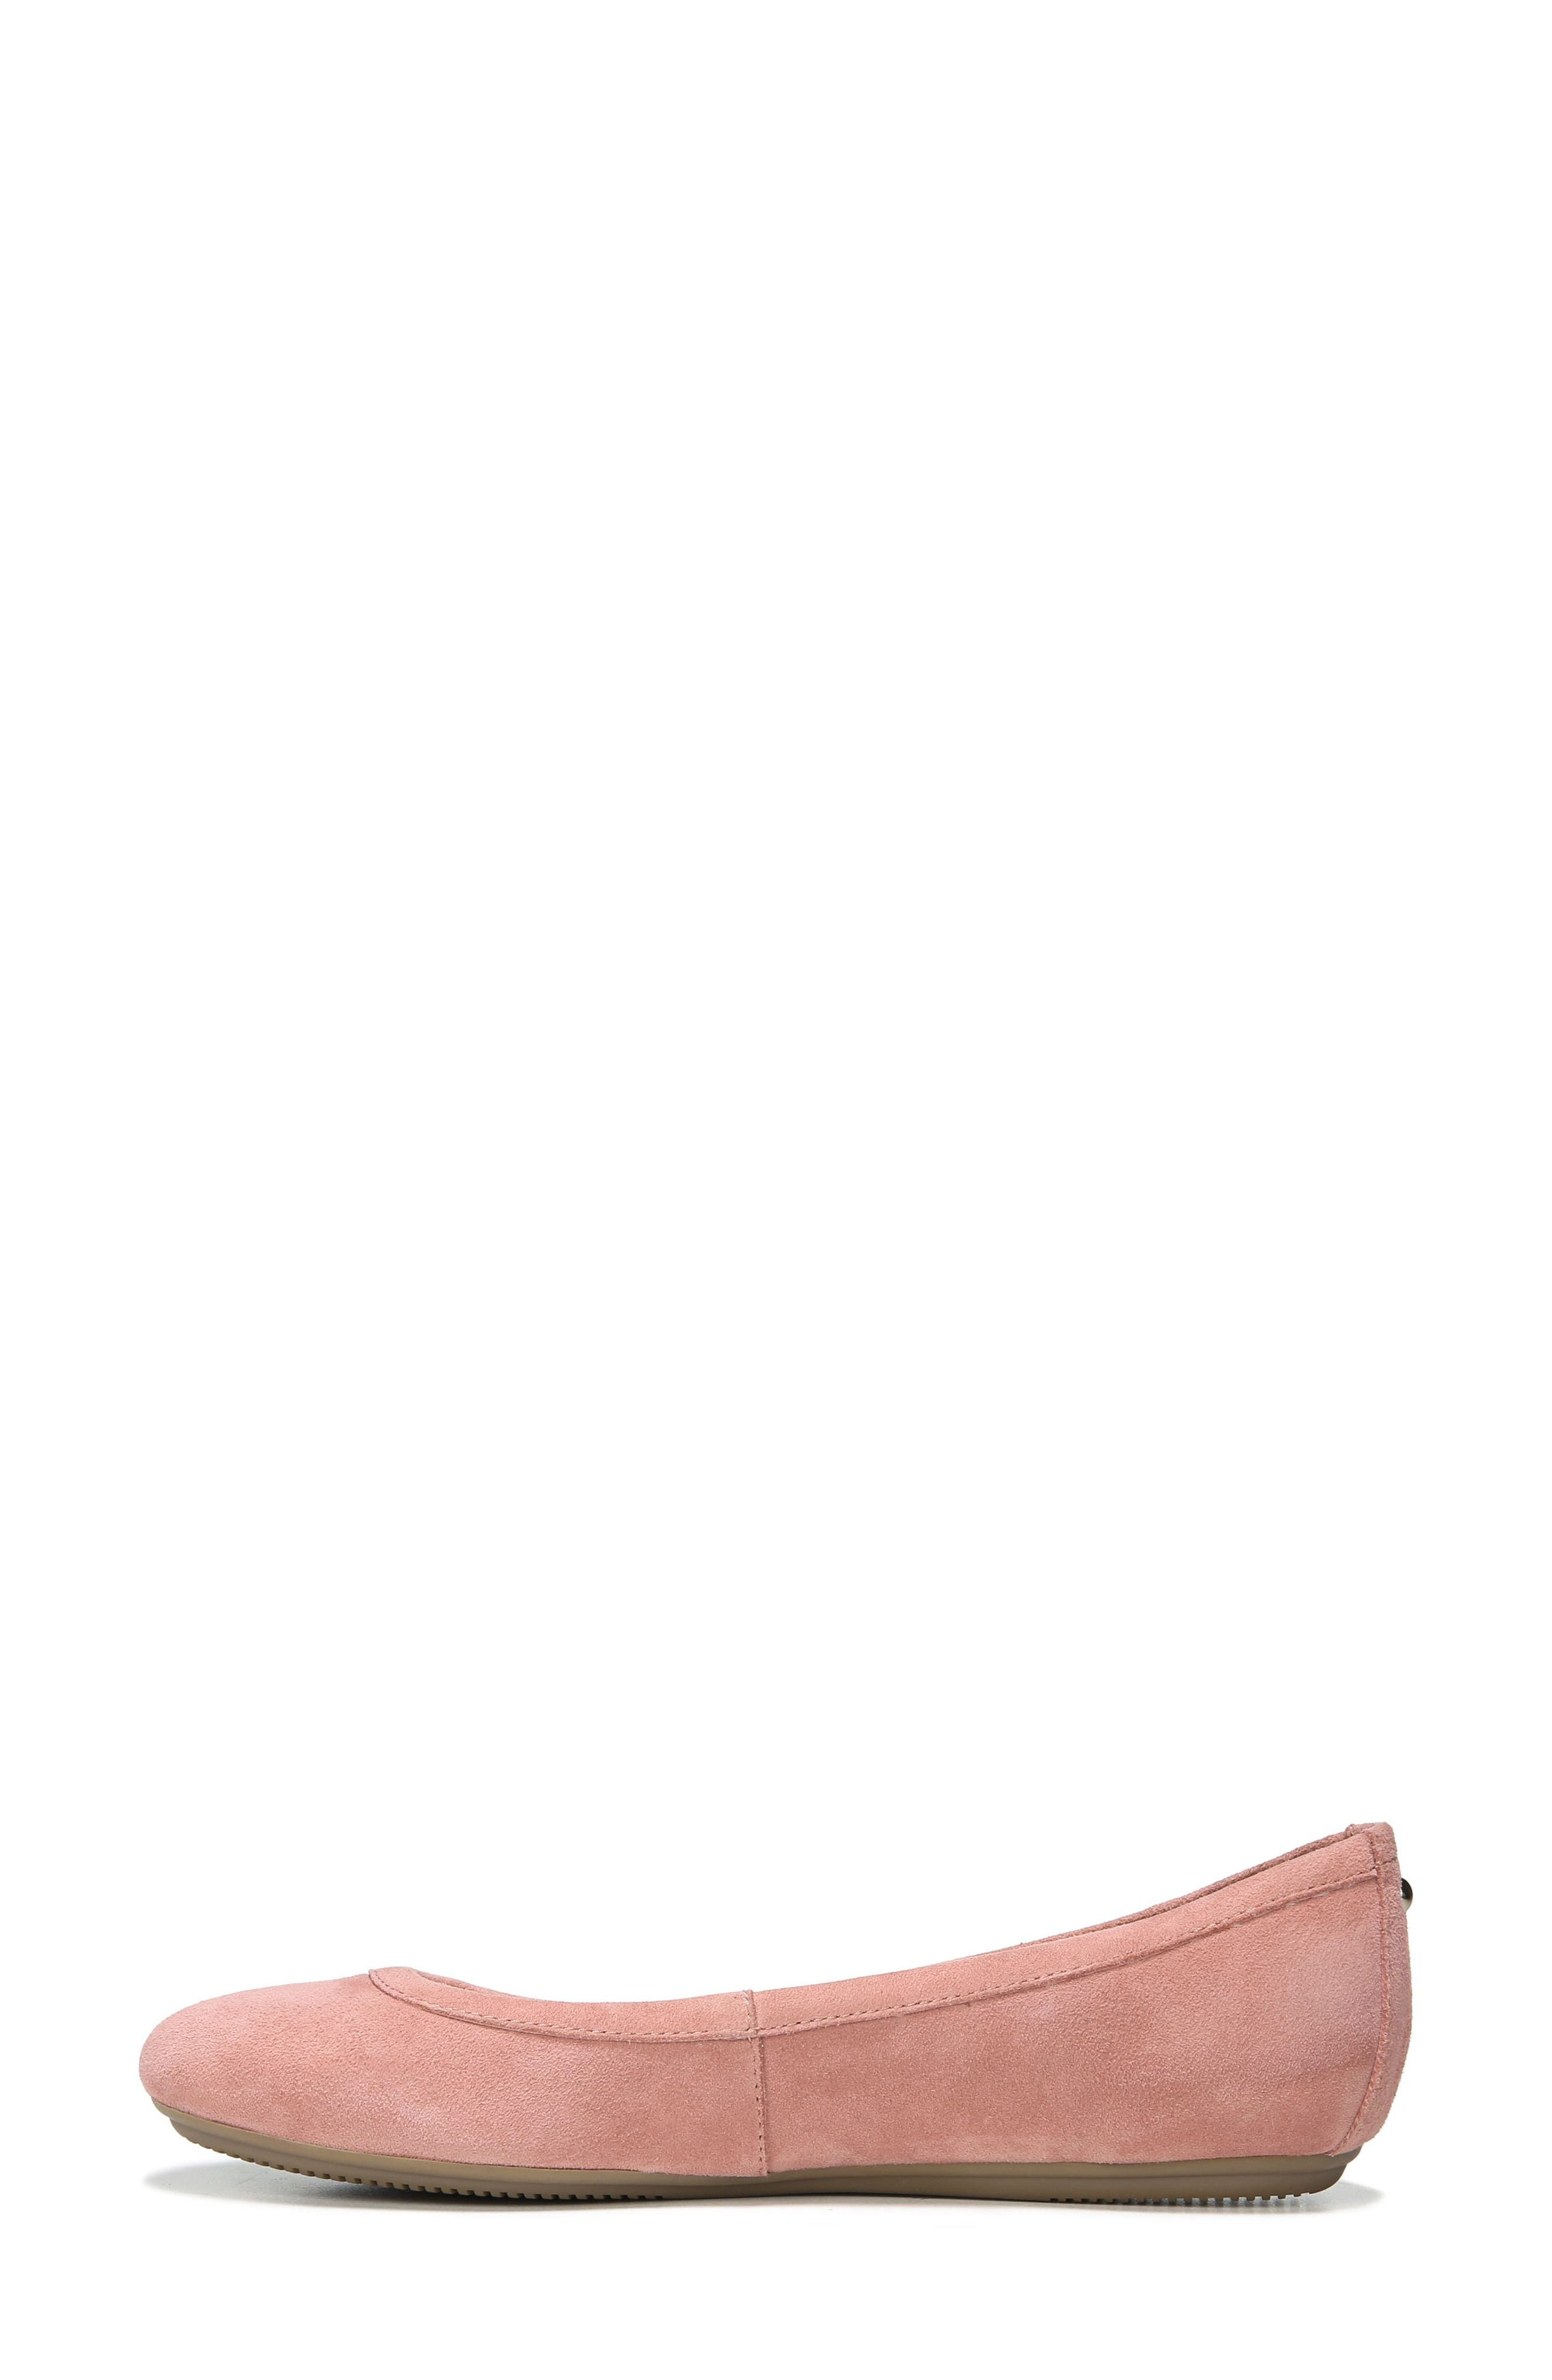 Brittany Ballet Flat,                             Alternate thumbnail 3, color,                             PEONY PINK SUEDE